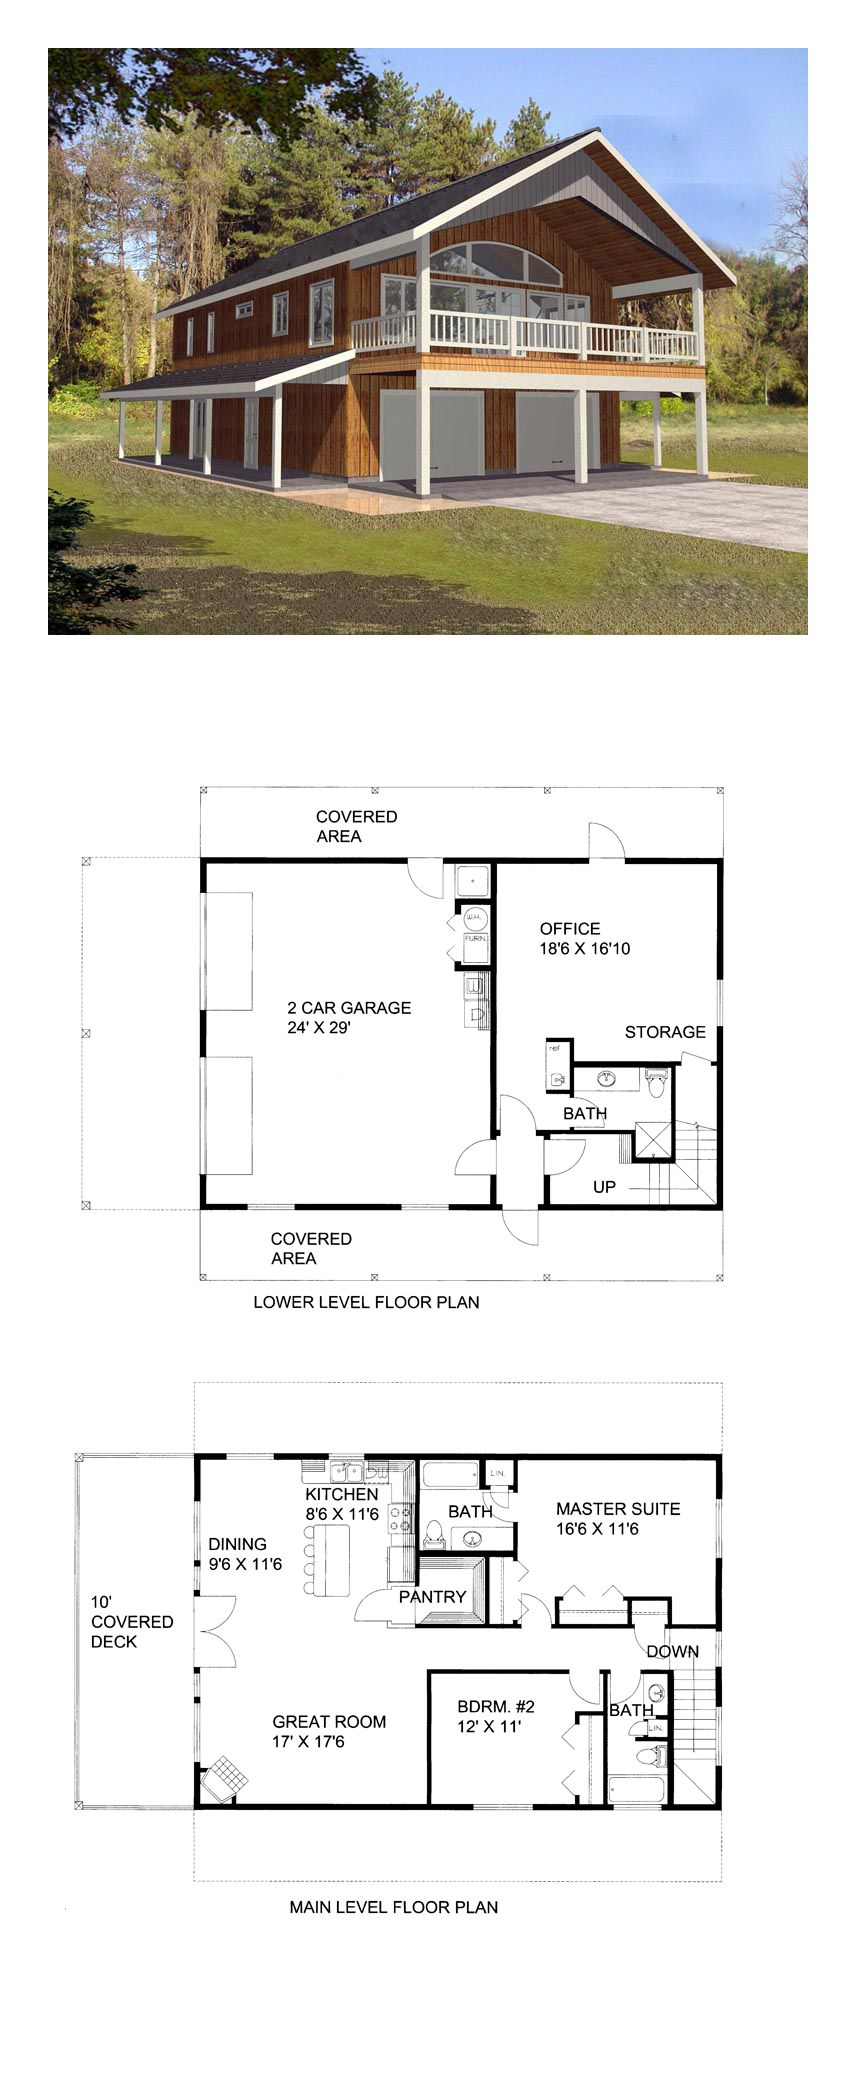 Garage Plan 85372 | Pinterest | Garage apartment plans, Garage ... on garage apartment blue print, workshop plans, house plans, 2 car garage plans, 3 car garage plans, storage shed plans, garage apt, floor plans, garage apartment interior, barn plans, chicken coop plans, garage office plans, playhouse plans, garage apartment layout, two story garage plans, 2 story garage apartments plans, victorian detached garage plans,